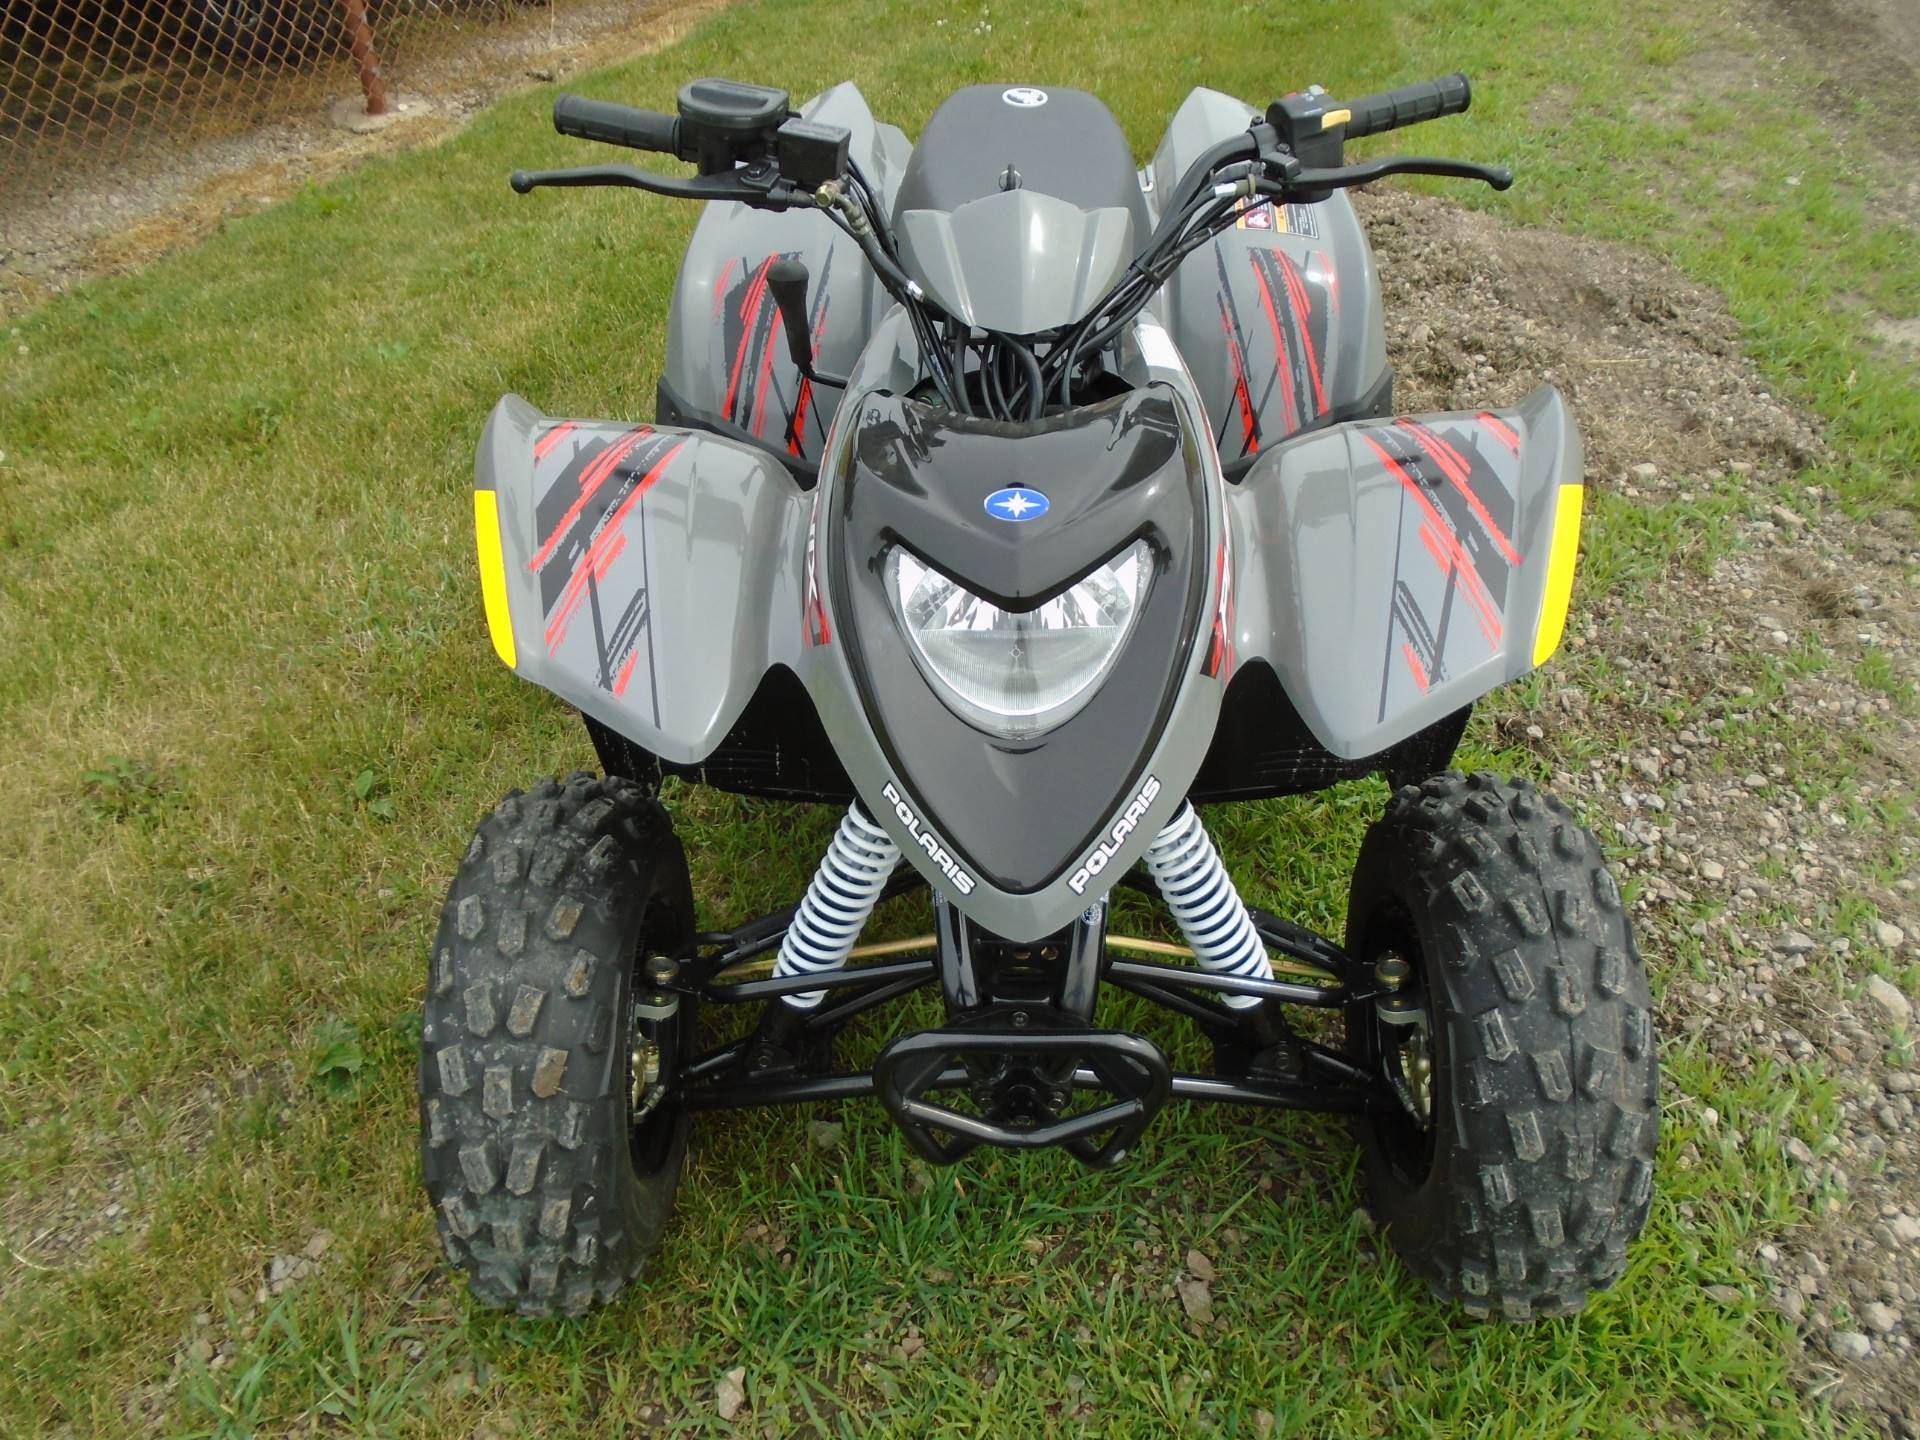 2019 Polaris Phoenix 200 in Lake Mills, Iowa - Photo 2